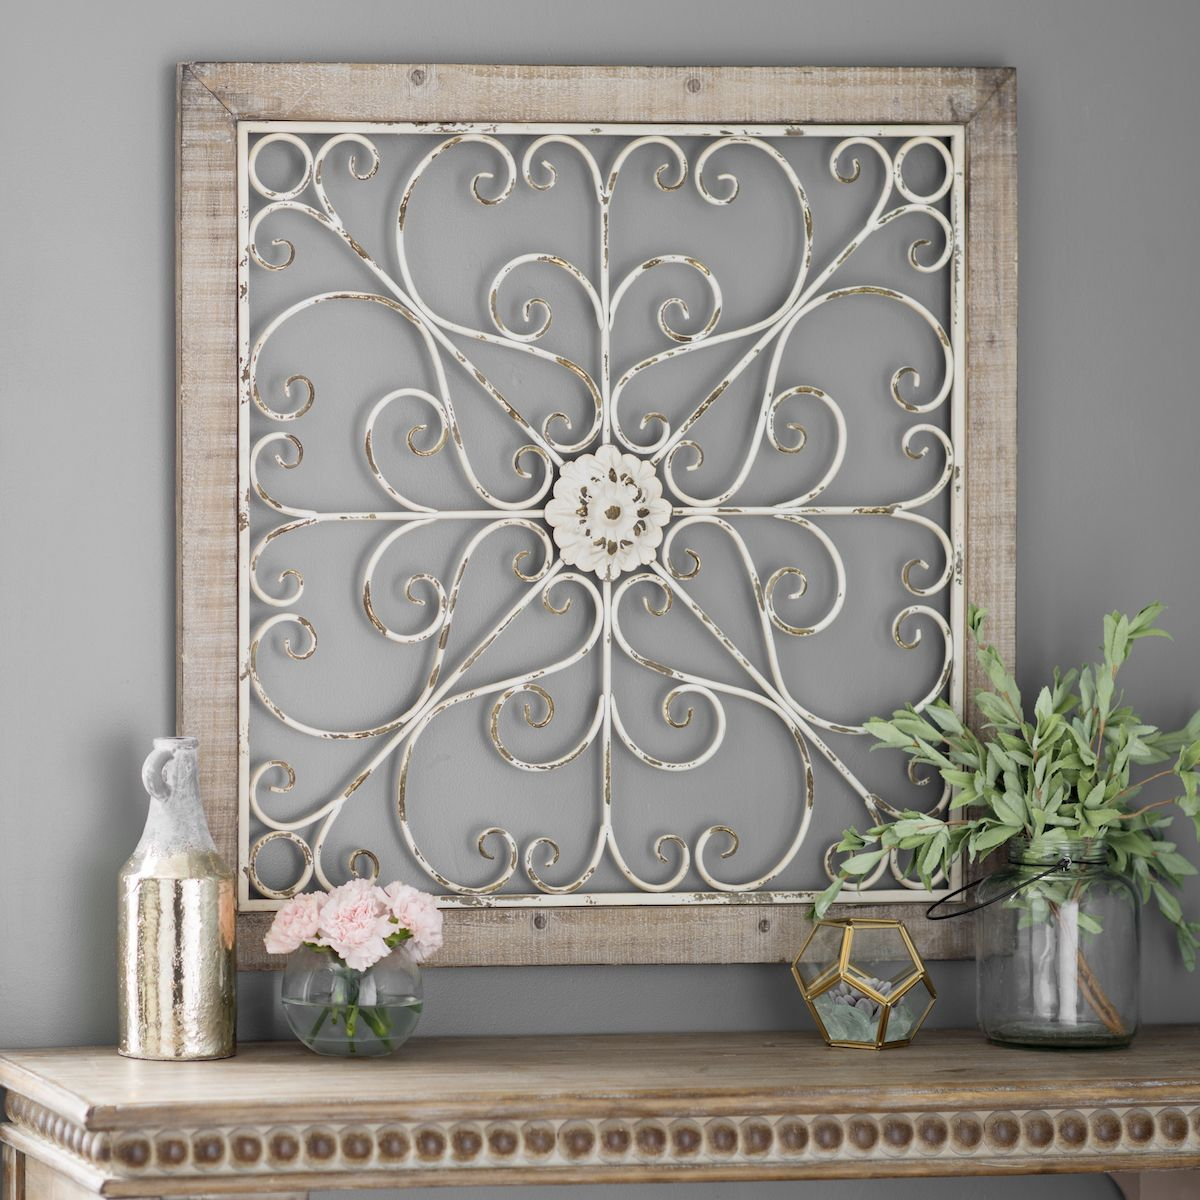 Refresh Your Wall With This Rustic Metal Scroll Plaque Rustic Wall Art Iron Wall Decor Exterior Wall Art